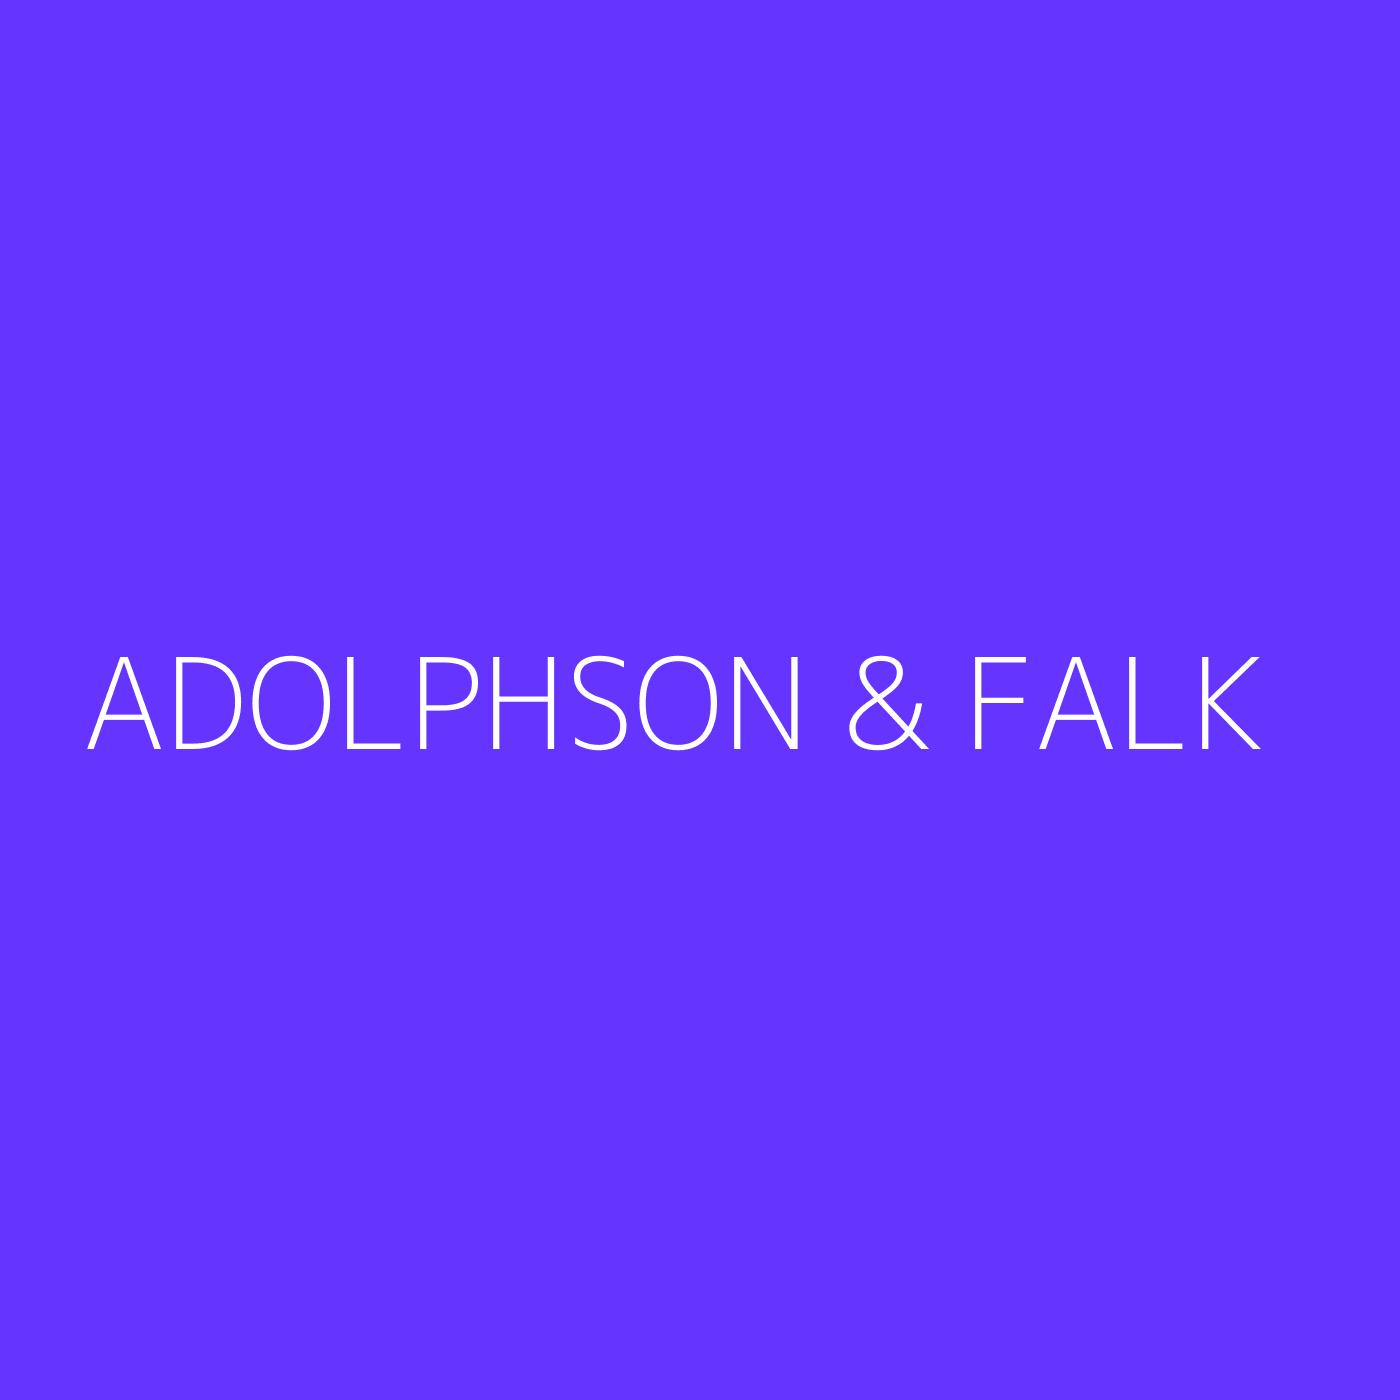 Adolphson & Falk Playlist Artwork